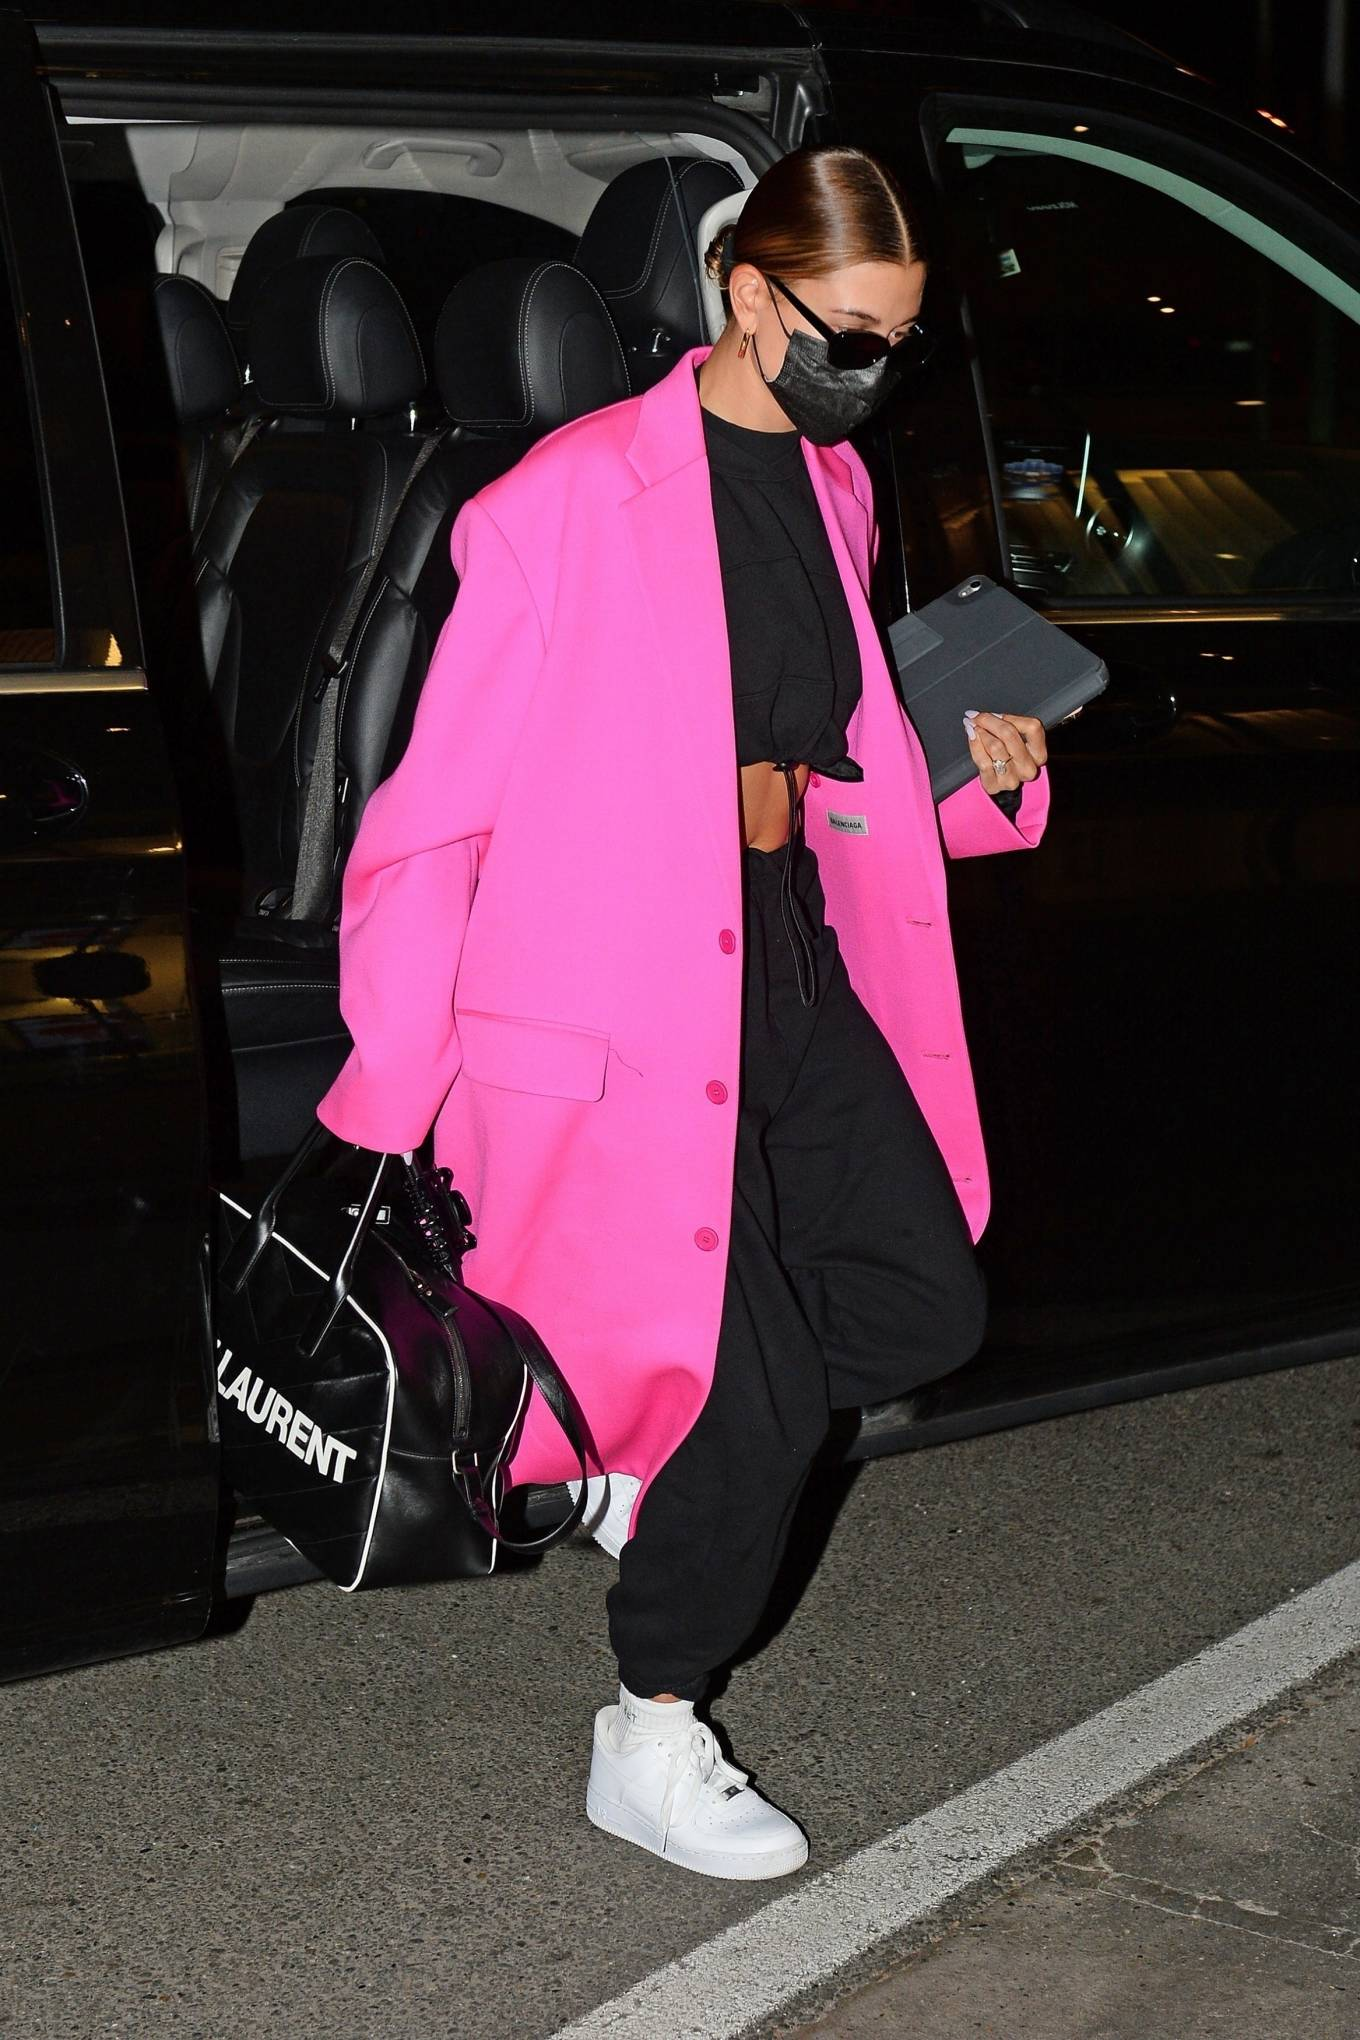 Hailey Bieber wearing a oversized hot pink button front trench coat with extra long sleeves, peak lapel collar and flap pockets